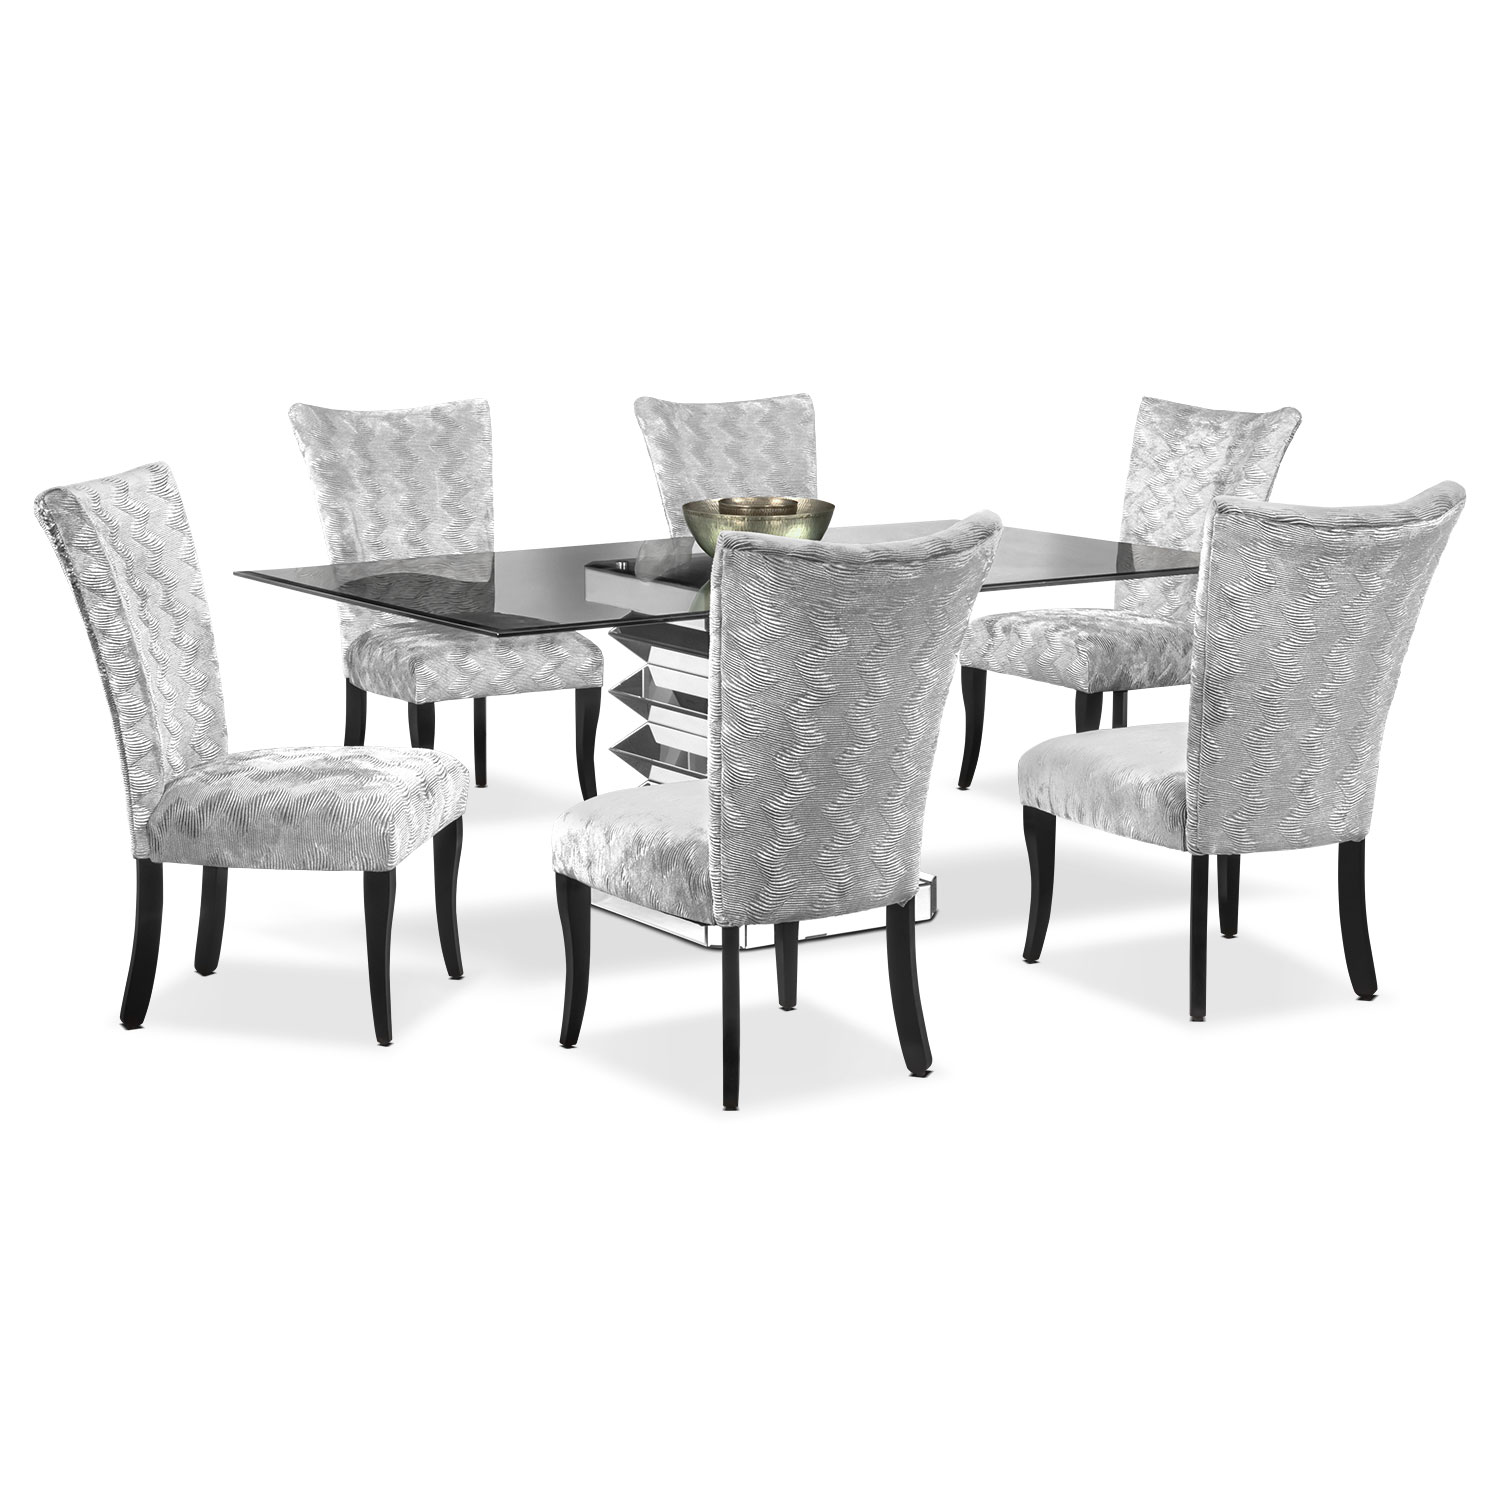 Dining Room Furniture - Vibrato Table and 6 Chairs - Silver